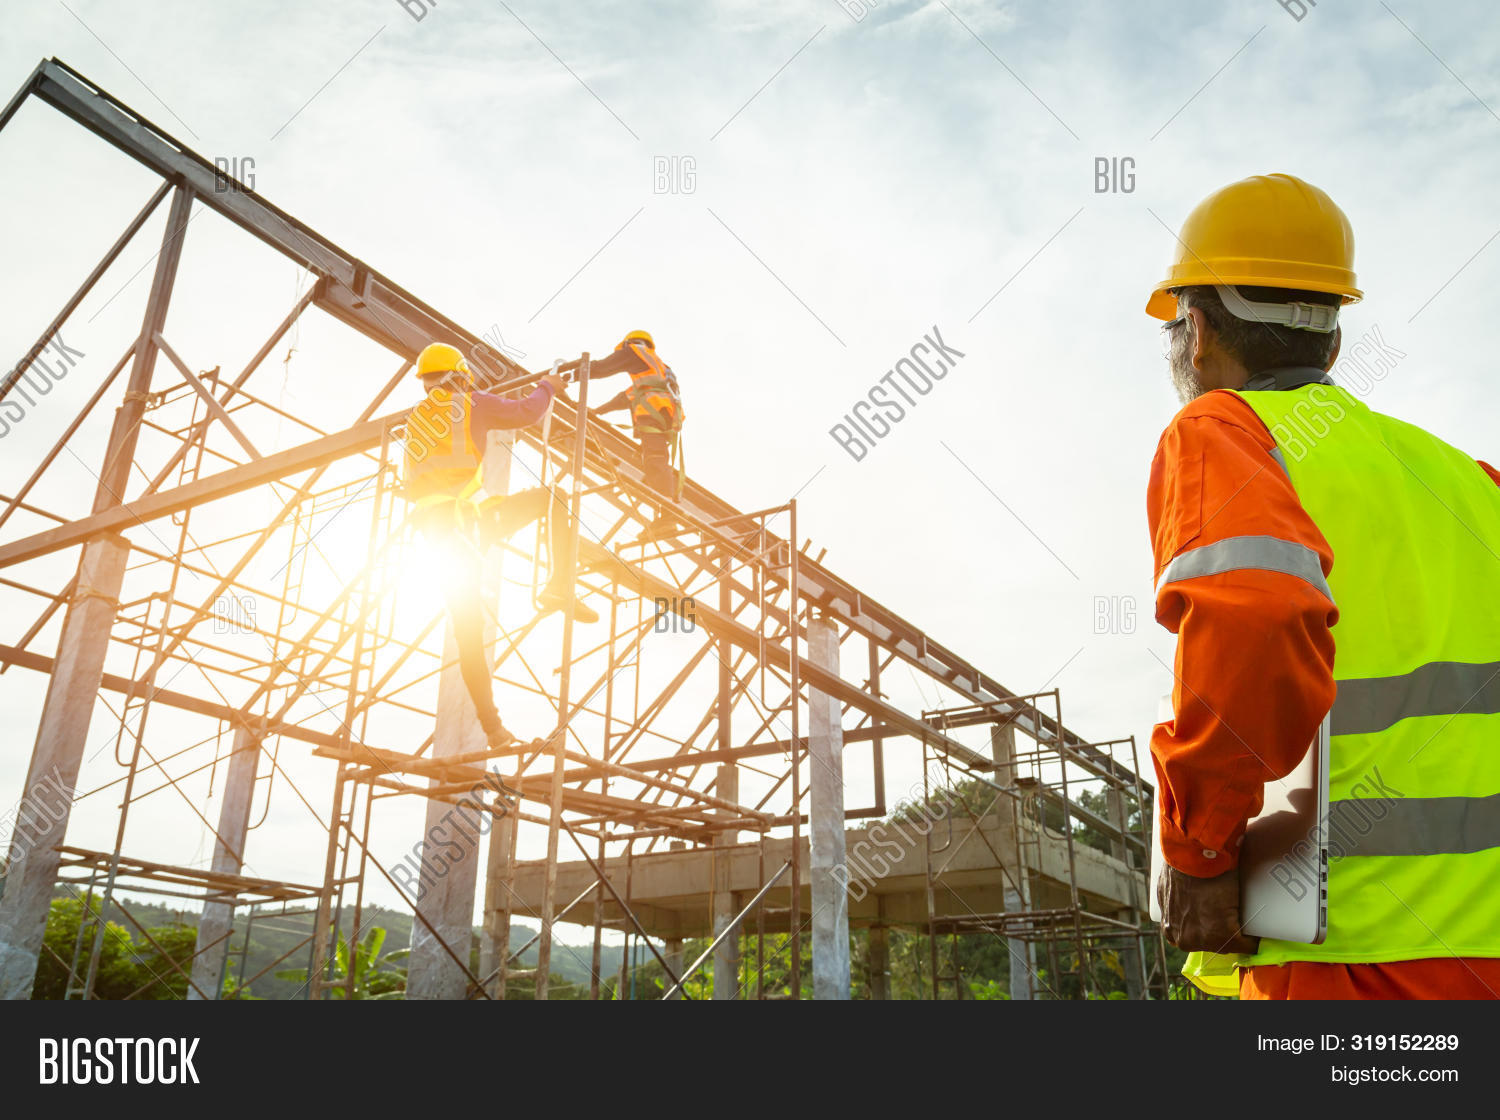 architect,architecture,background,builder,building,business,civil,cloth,computer,concrete,construct,construction,contractor,crane,design,drawing,engineer,engineering,equipment,factory,foreman,helmet,house,industrial,industry,inspection,inspector,jacket,job,male,man,manager,occupation,people,plan,profession,professional,project,safety,site,steel,structure,team,teamwork,technology,vest,work,worker,workplace